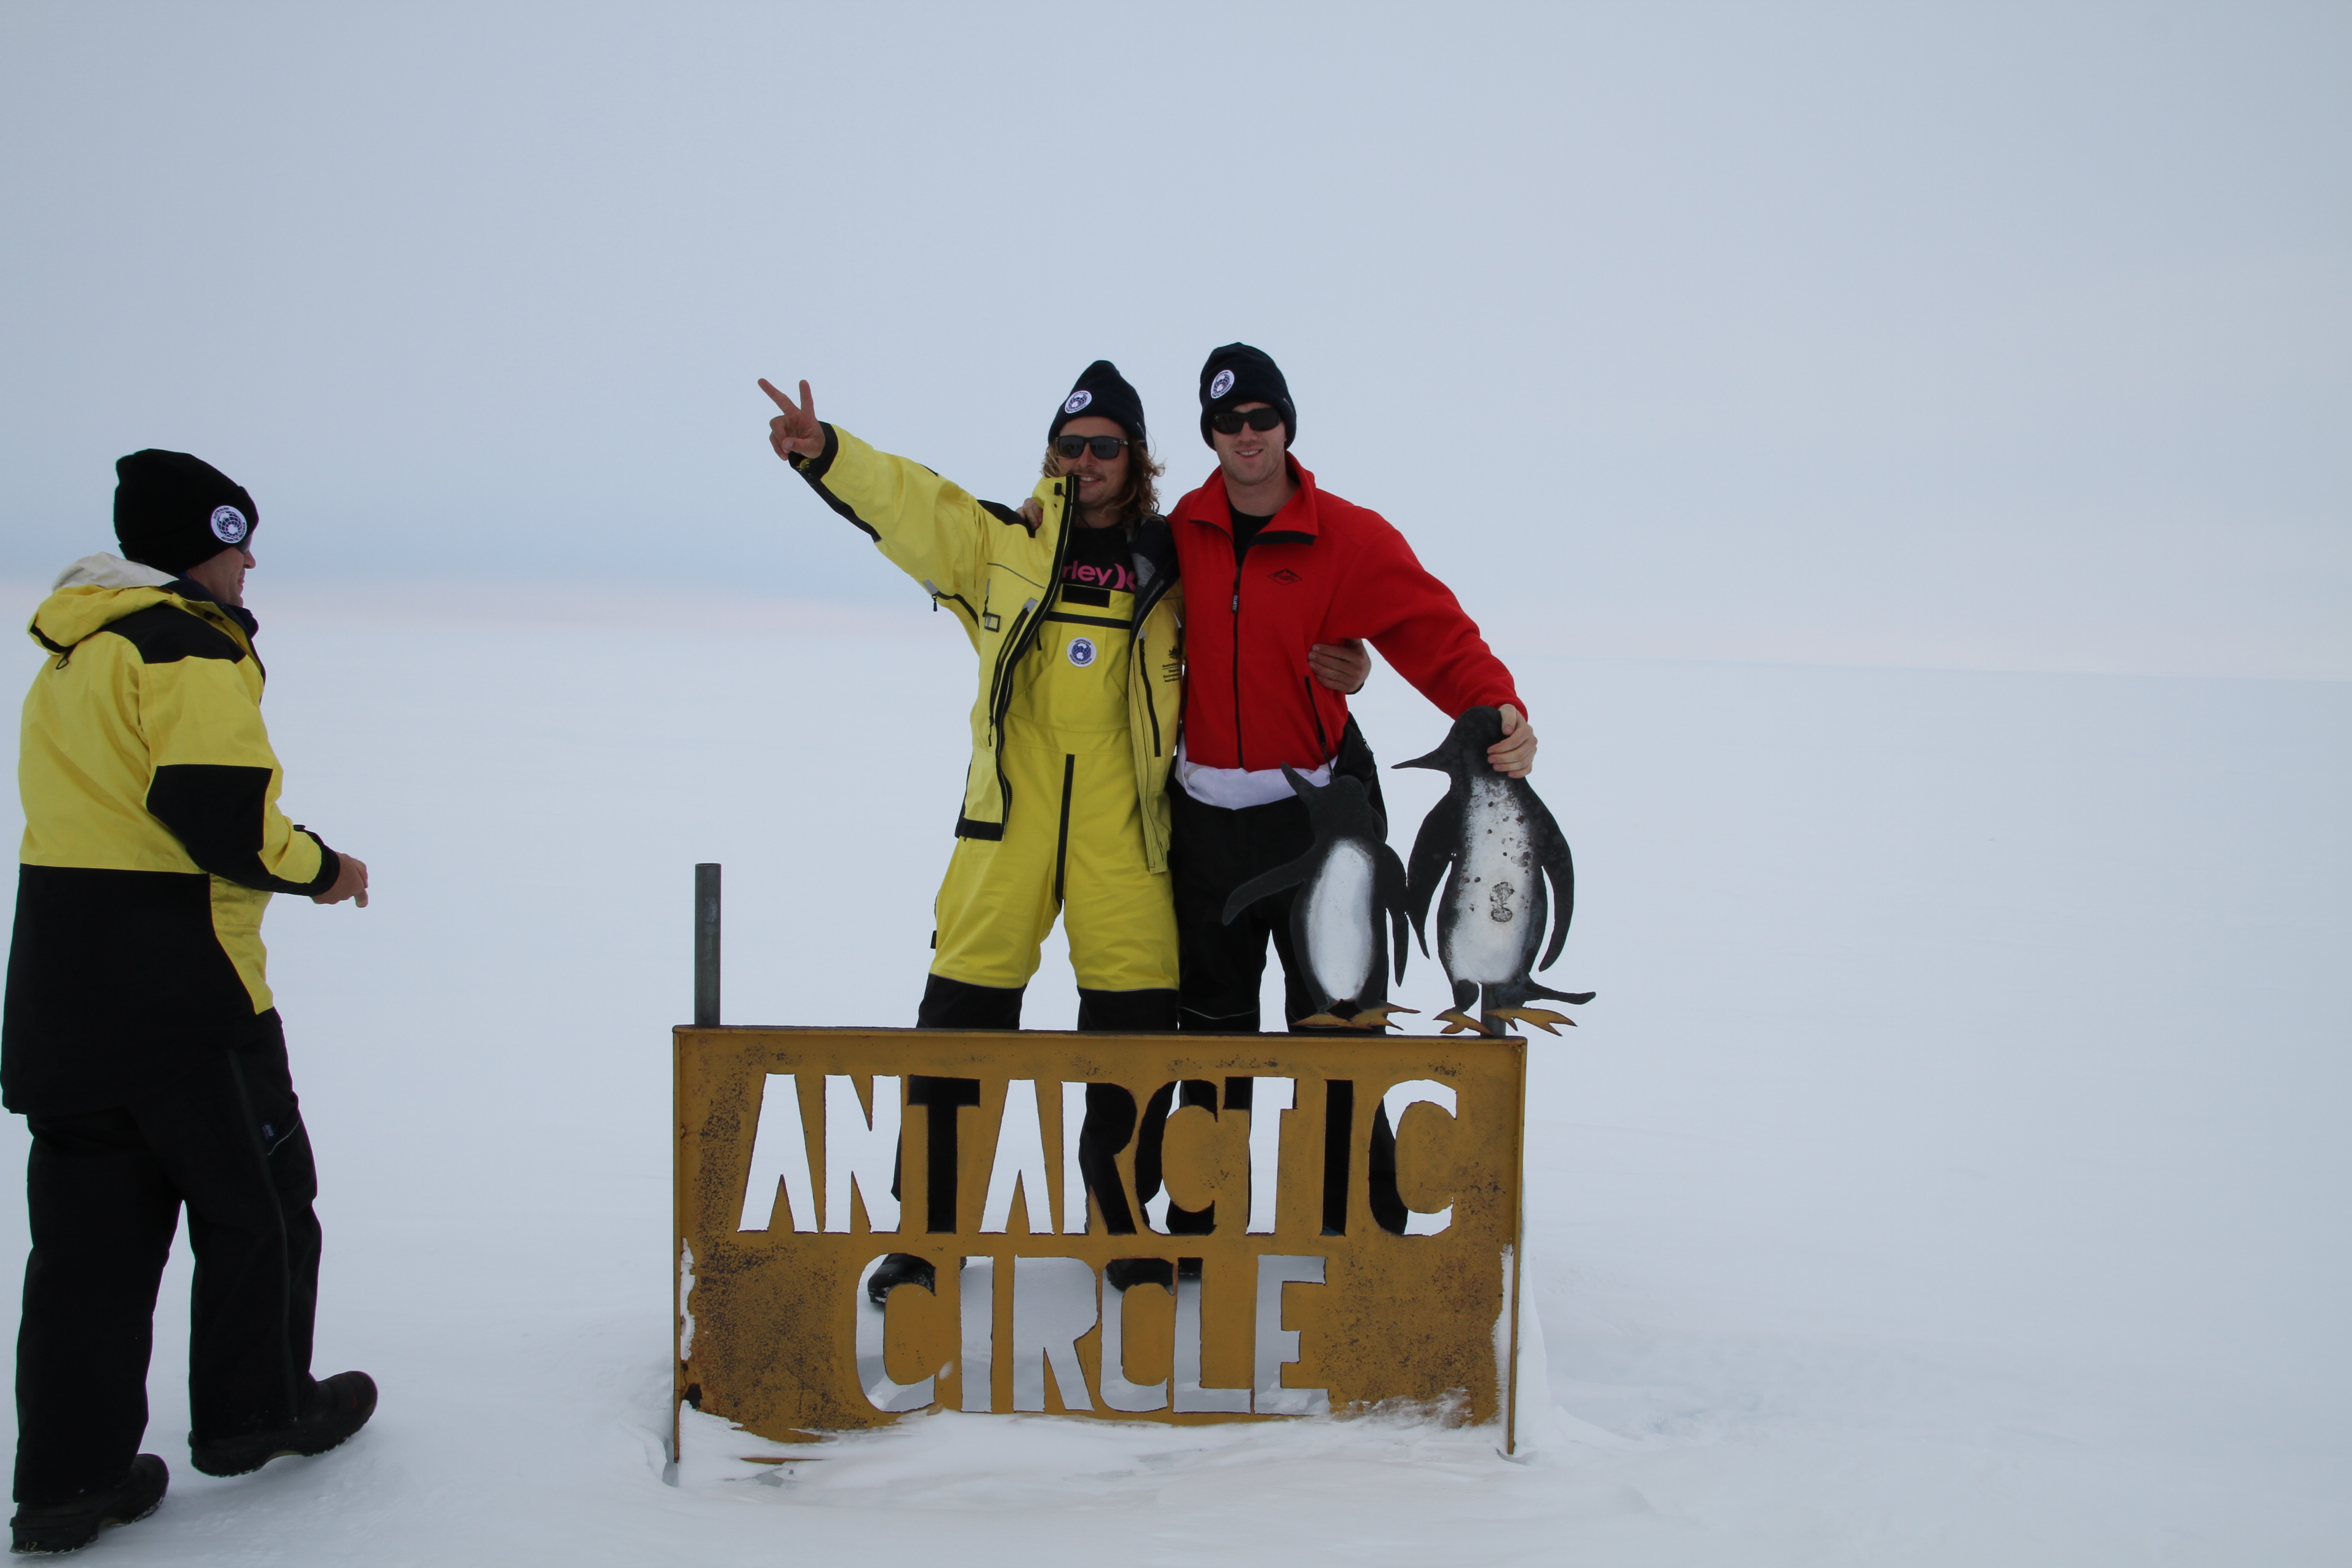 arriving at the Antarctic Circle!